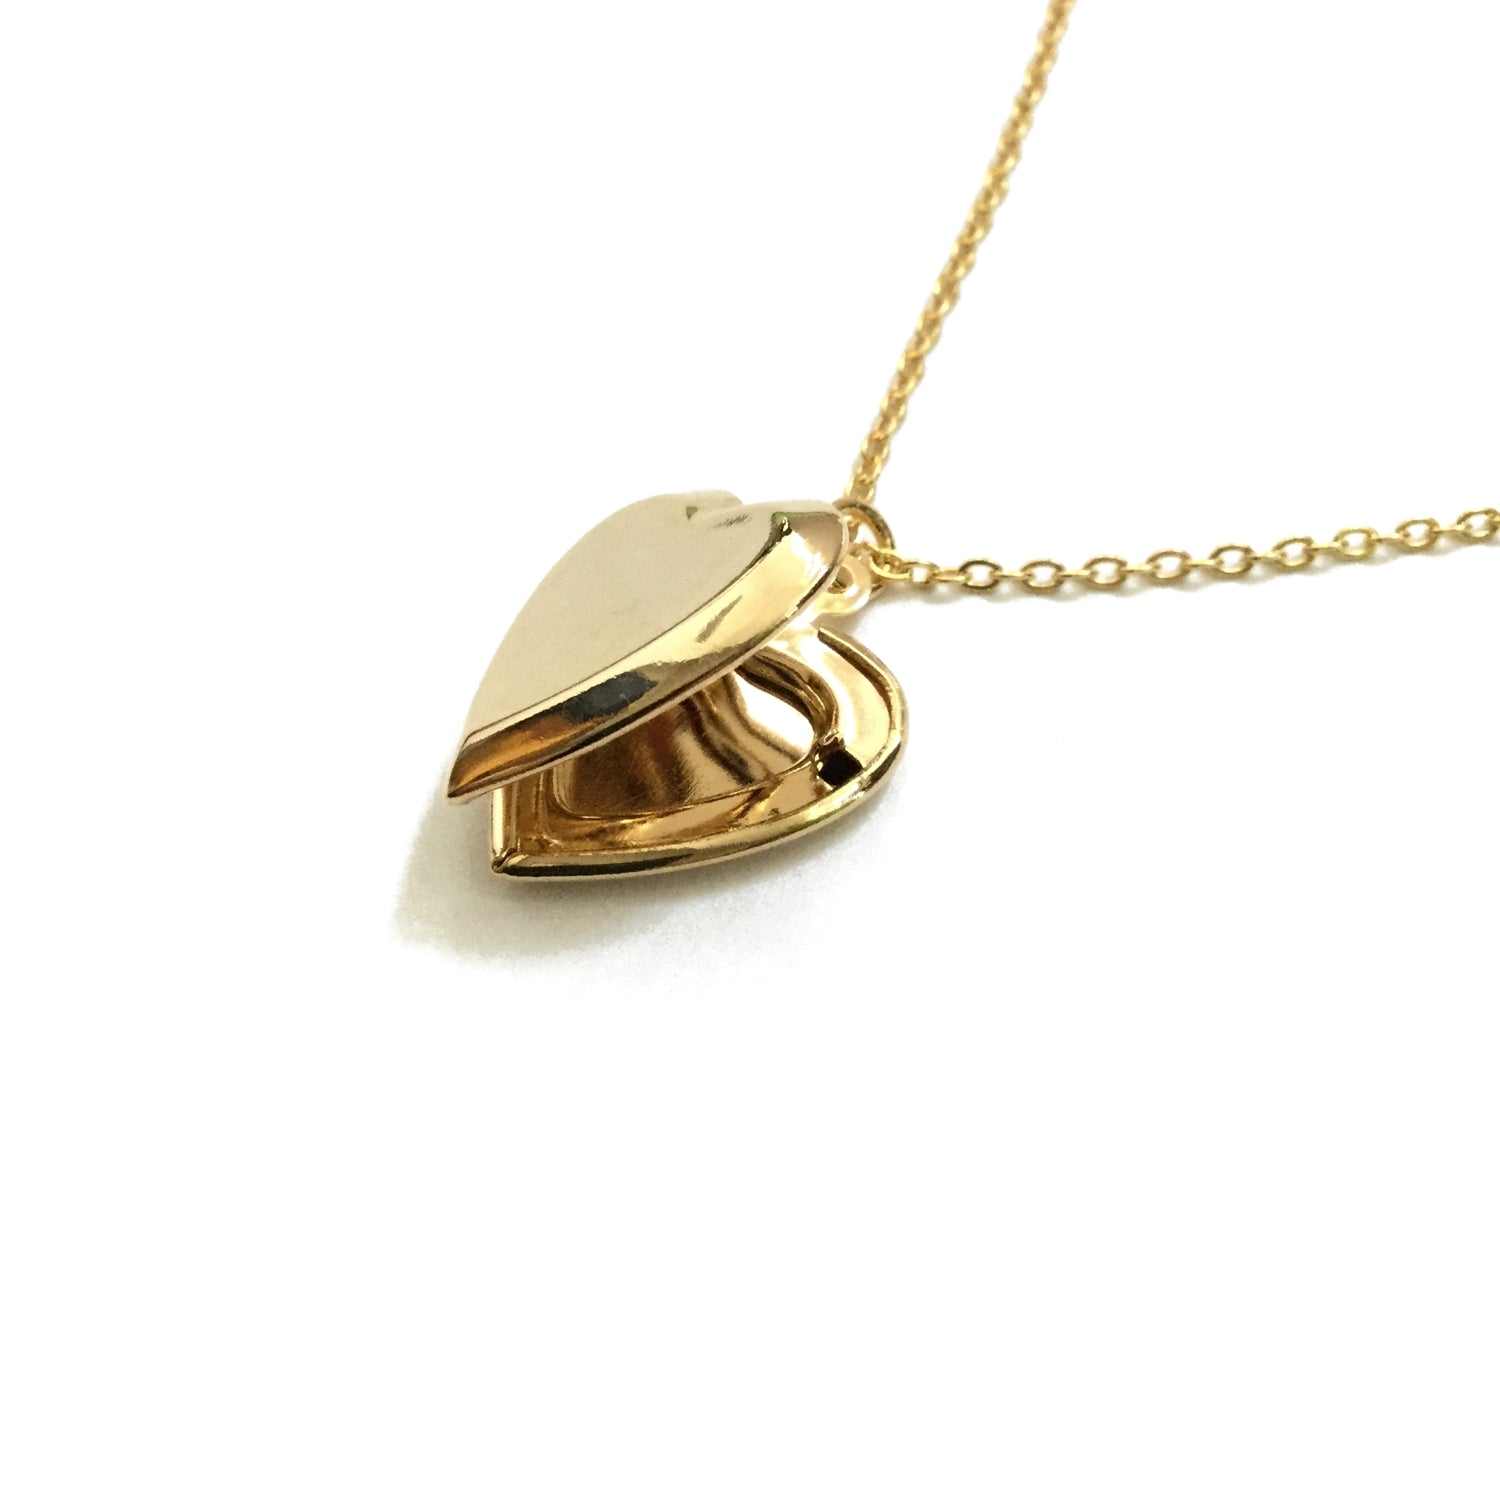 Gold plated heart shaped locket necklace